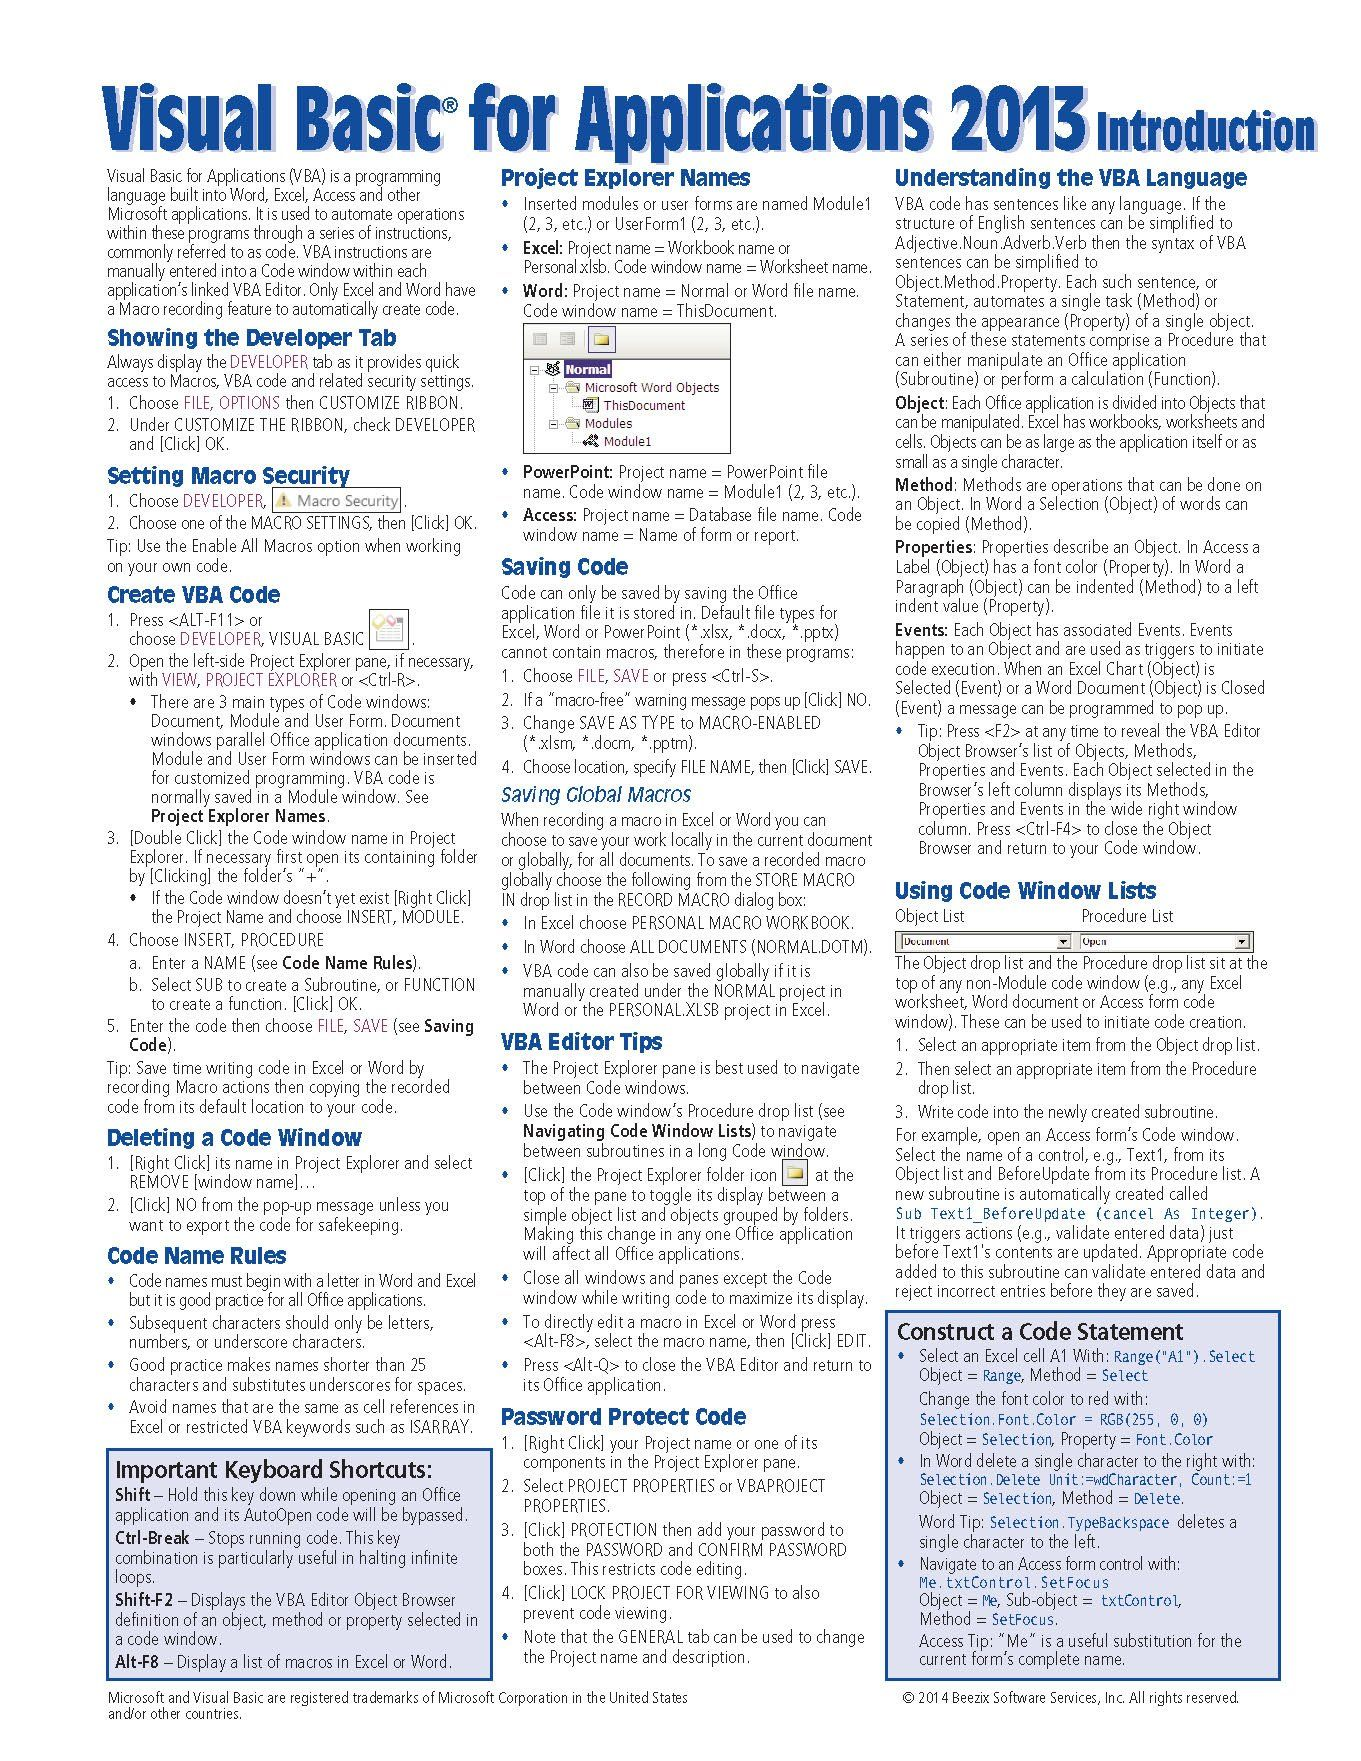 Visual Basic For Applications Vba Quick Reference Guide Introduction Cheat Sheet Of